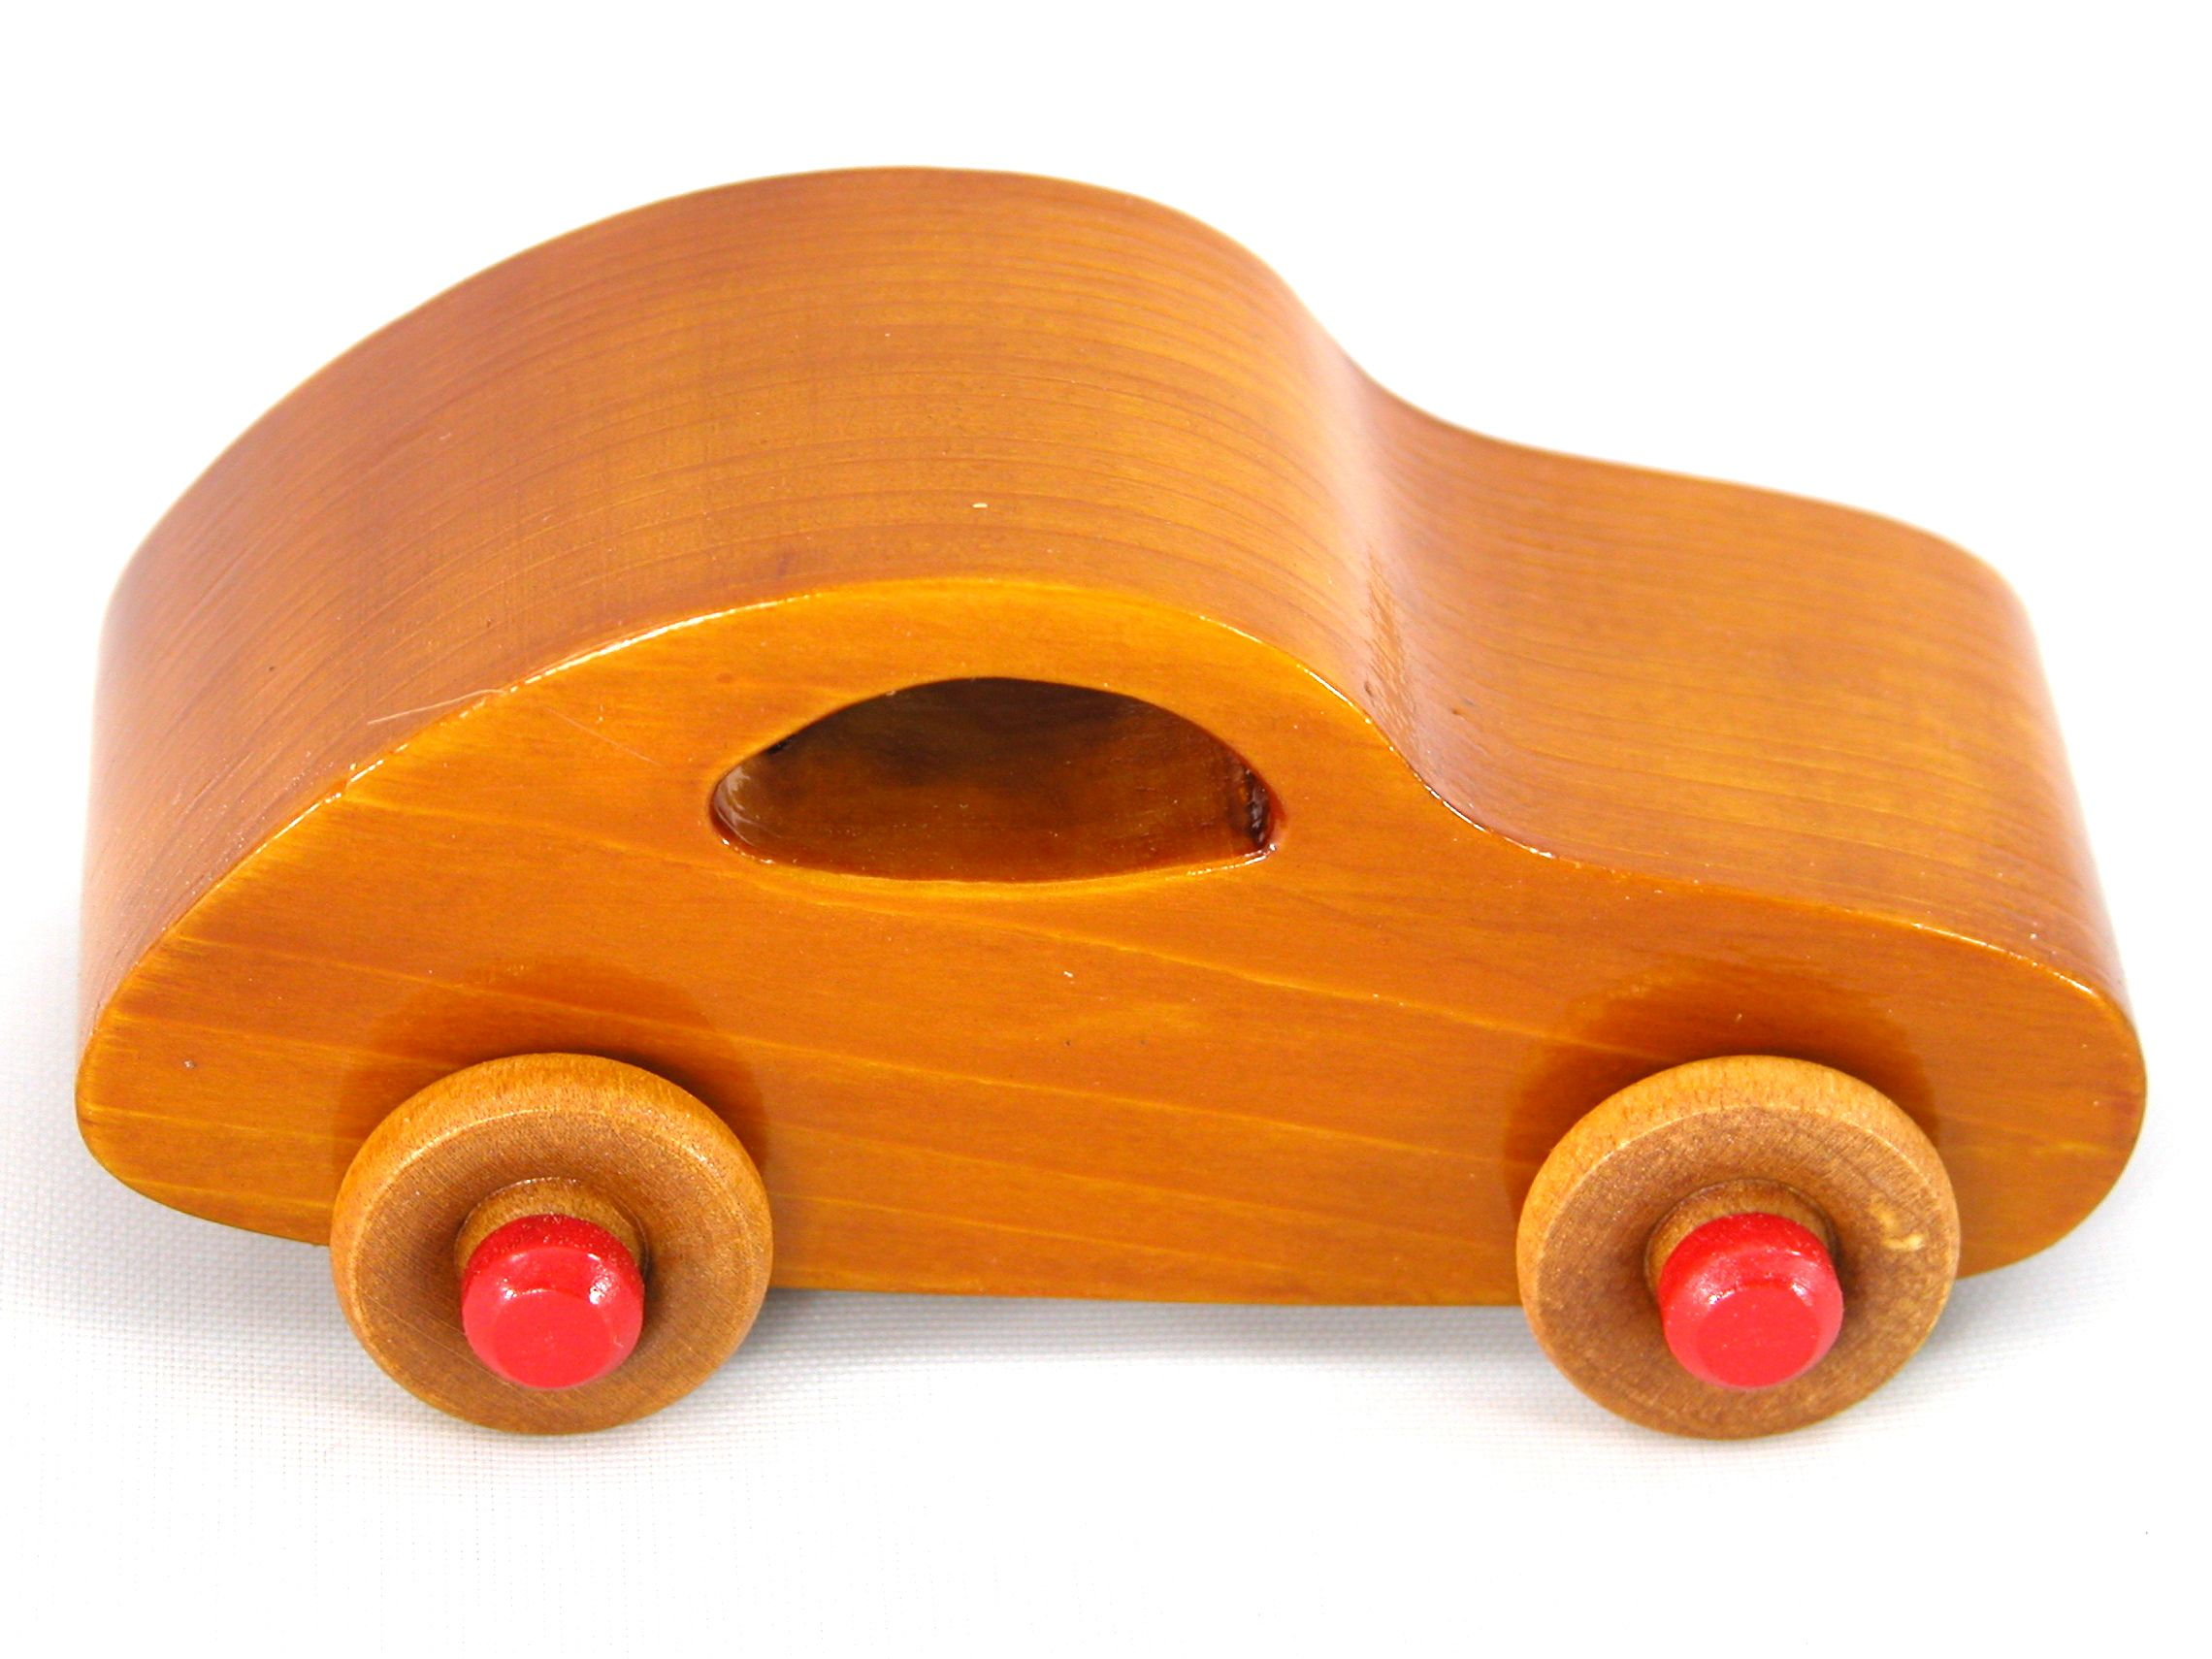 Toys cars pics  Wooden Toy Car VW Bug Wooden Toy Cars Toys For Boys Toys For